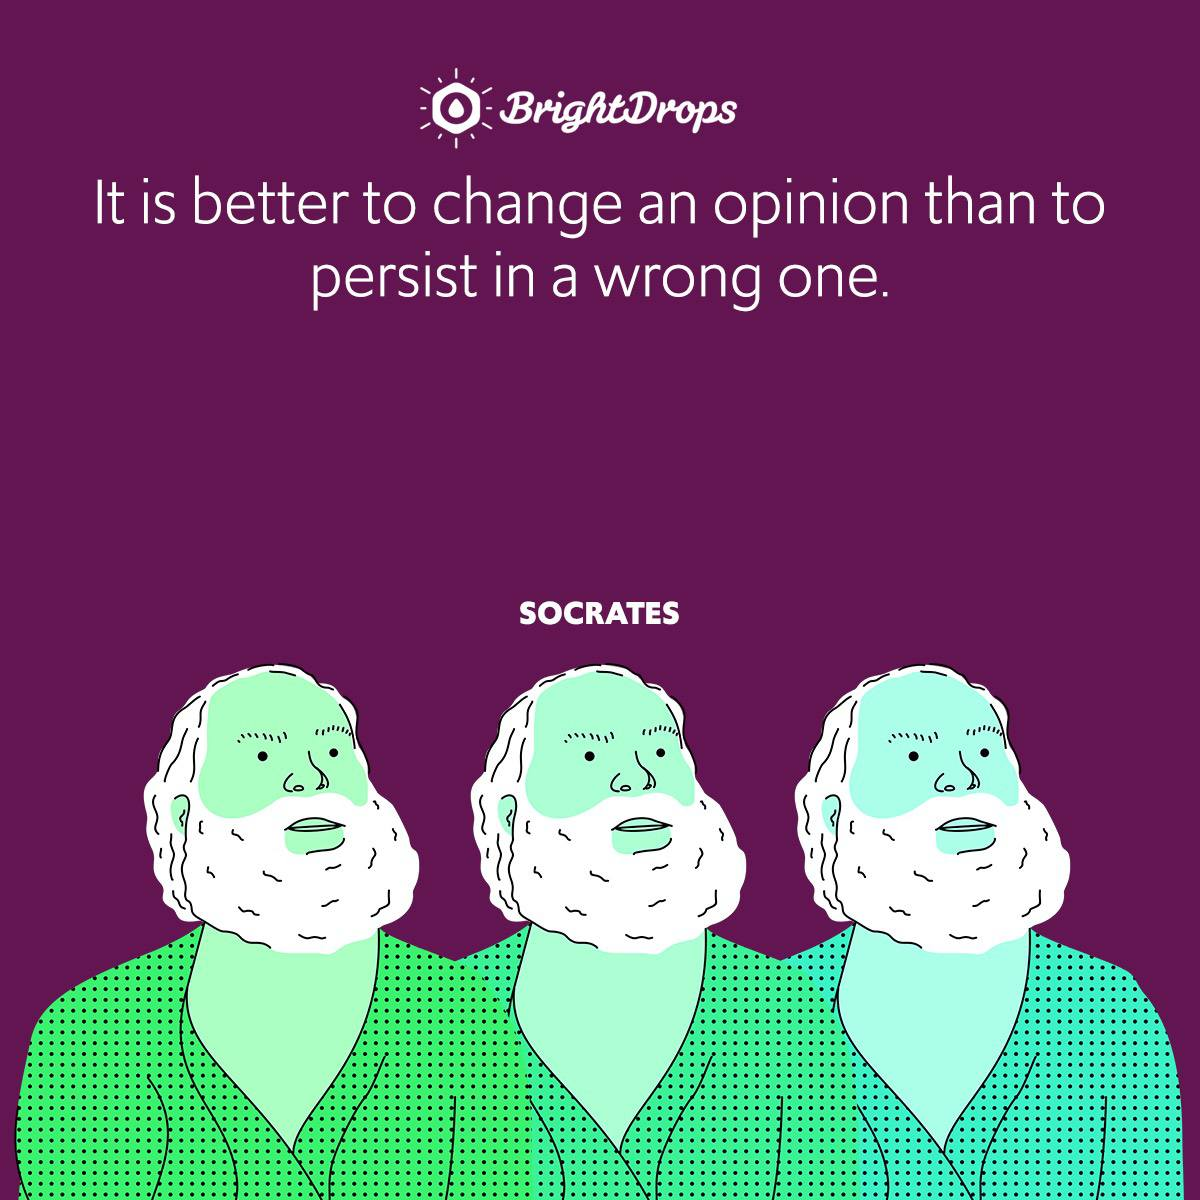 It is better to change an opinion than to persist in a wrong one.